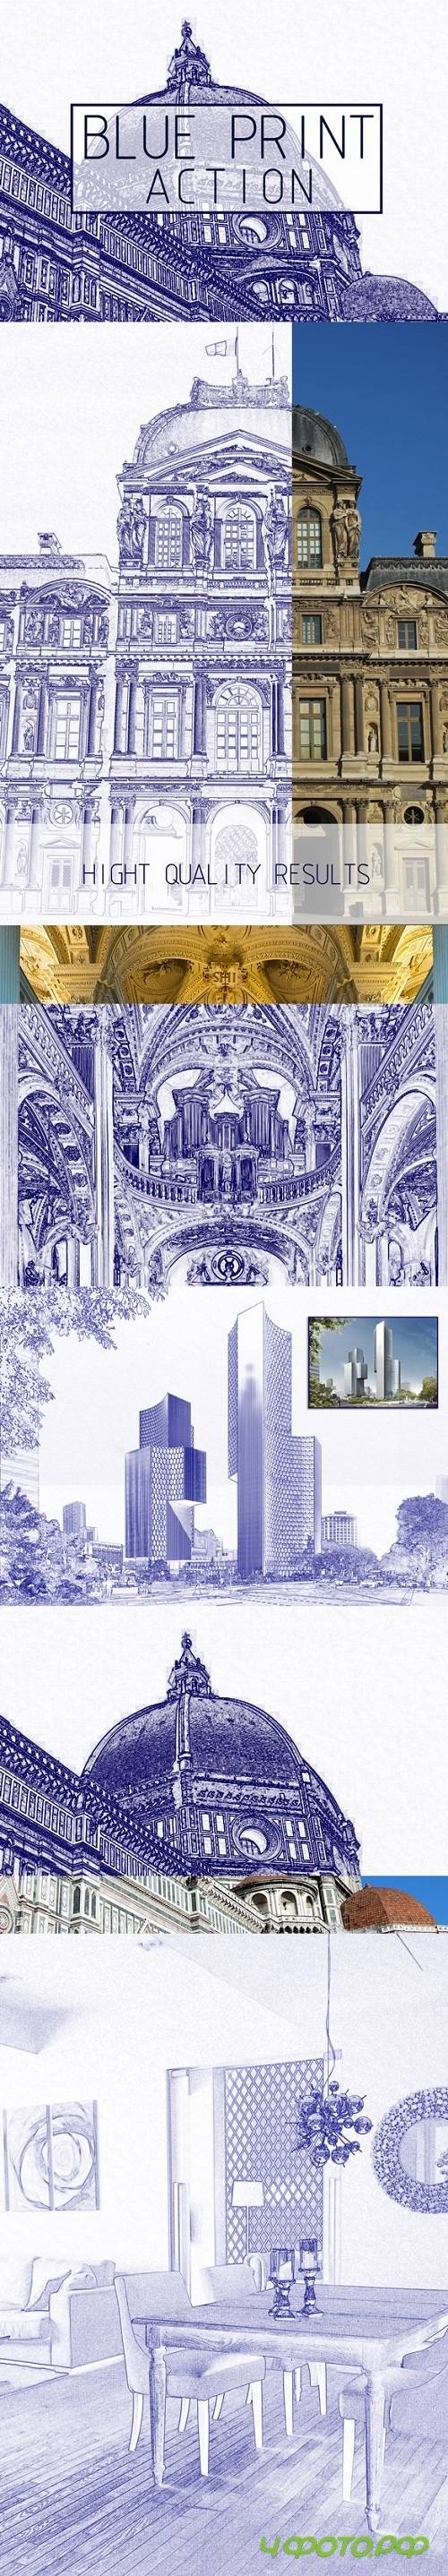 Architectural Sketch Photoshop Action 20448760